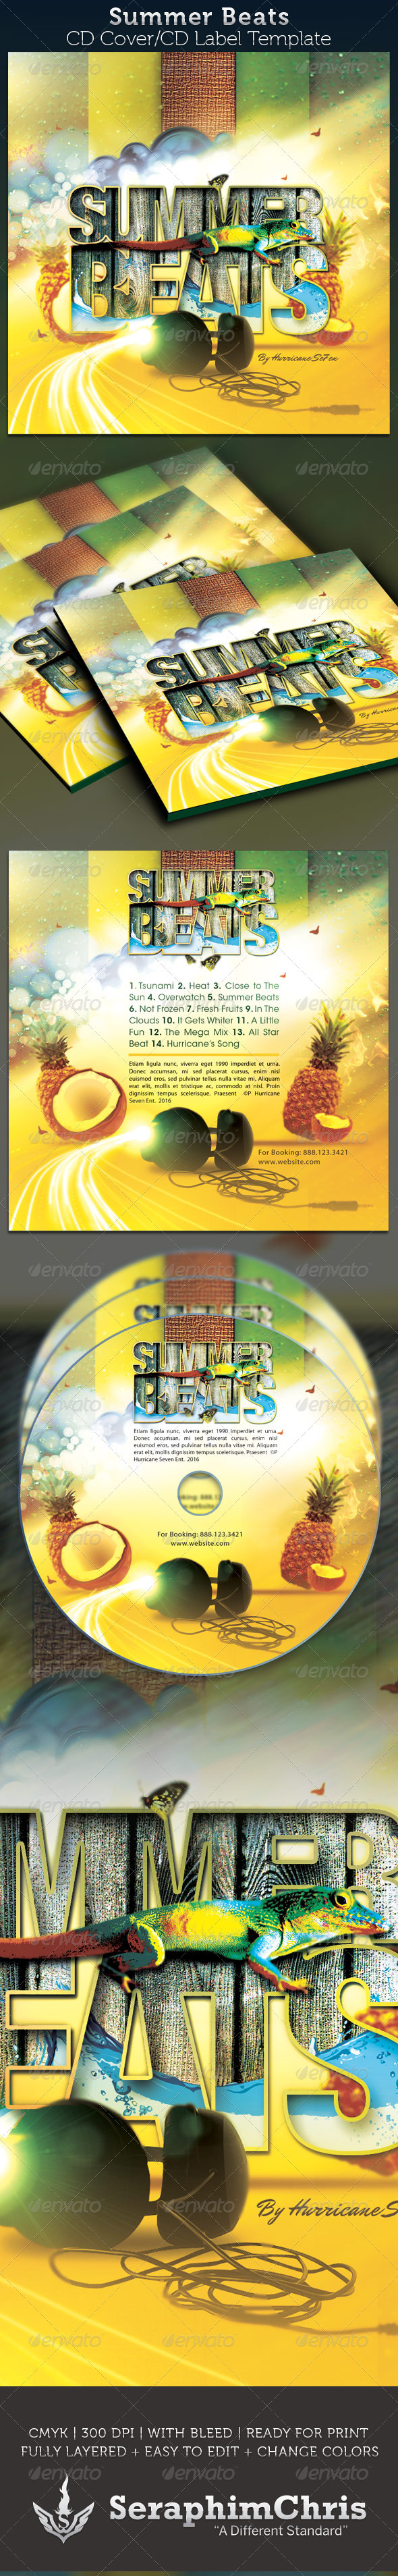 Summer Beats CD Artwork Template - CD &amp; DVD artwork Print Templates